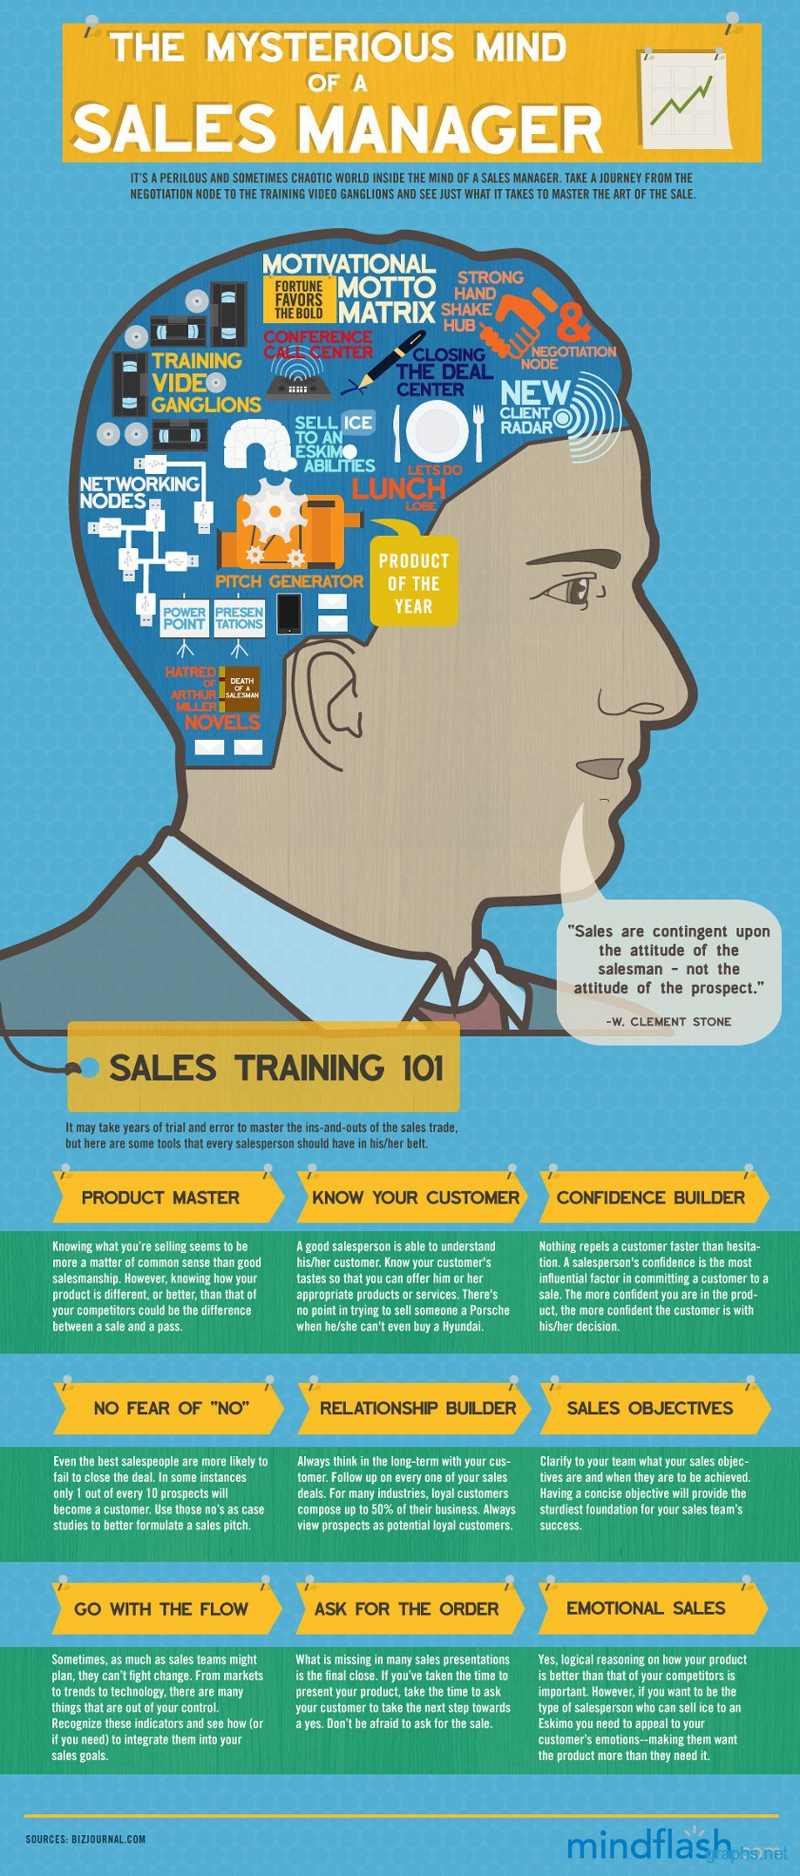 Sales Manager Traits